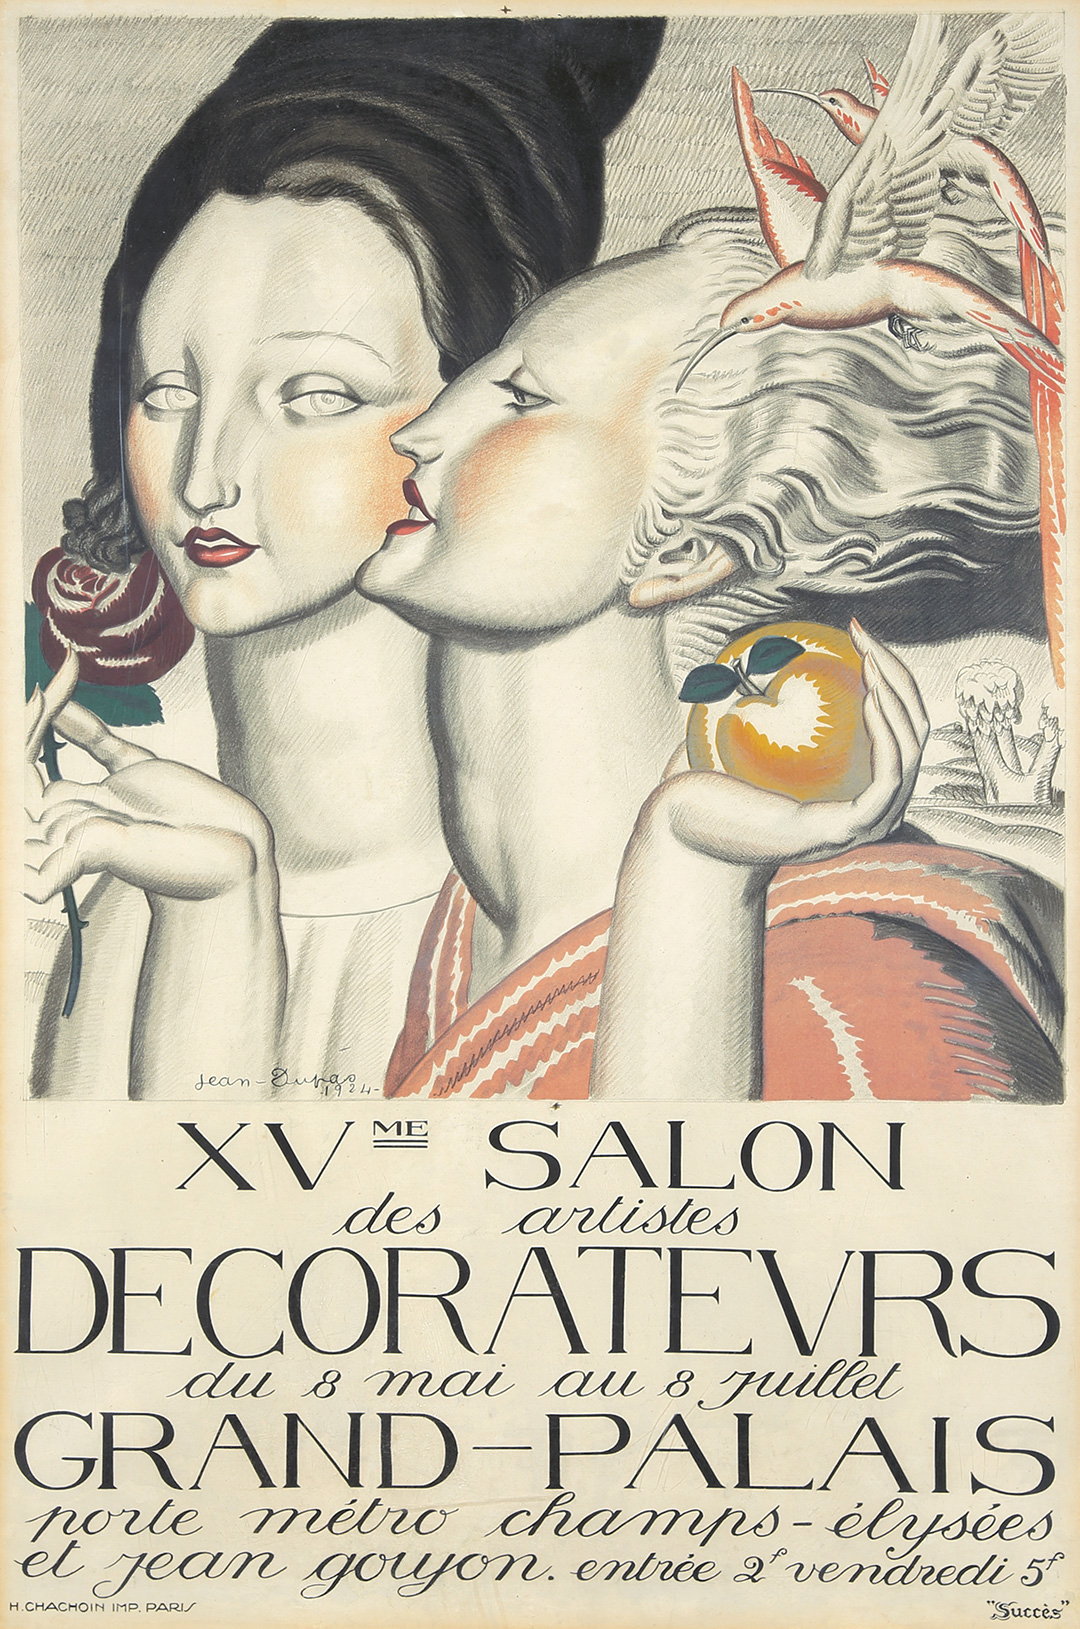 263. XVme Salon des Artistes Decorateurs. 1924.